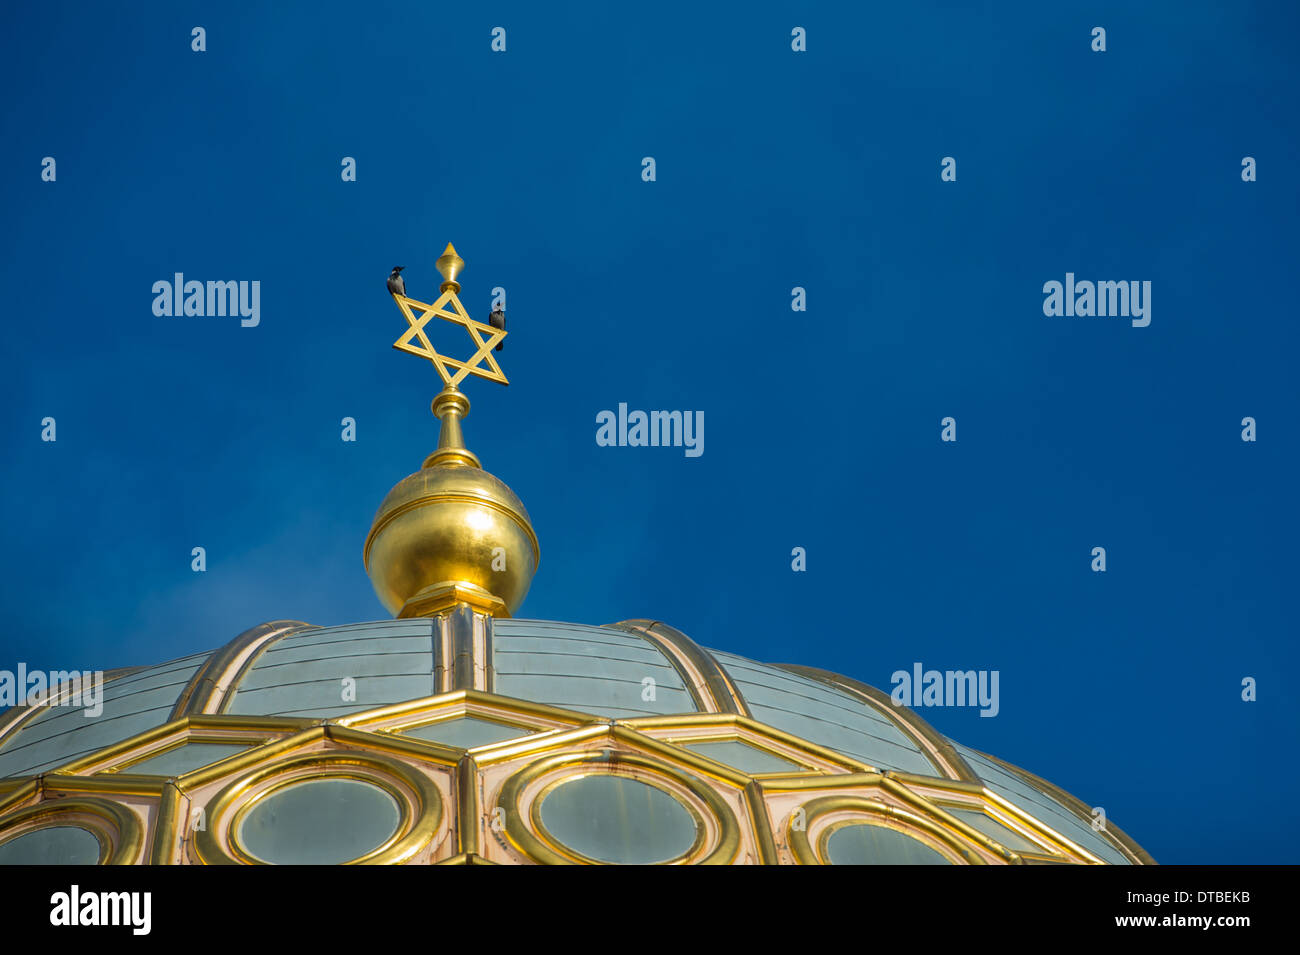 Berlin, Germany , Spire of the New Synagogue in Oranienburger Strasse with jackdaws Stock Photo